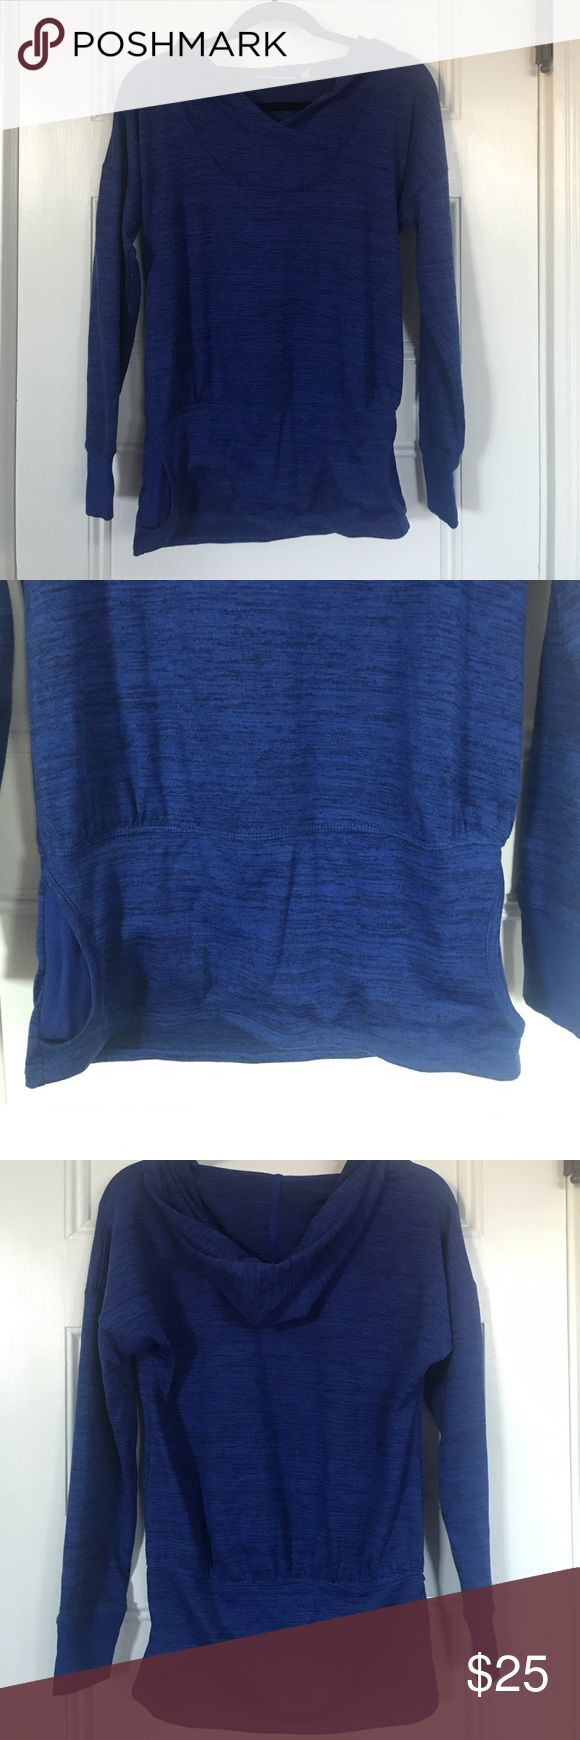 Athleta Batwing Hoodie in Blue Batwing hoodie from Athleta. Has think low waist band that covers your bum. Has pockets. Athleta Tops Sweatshirts & Hoodies